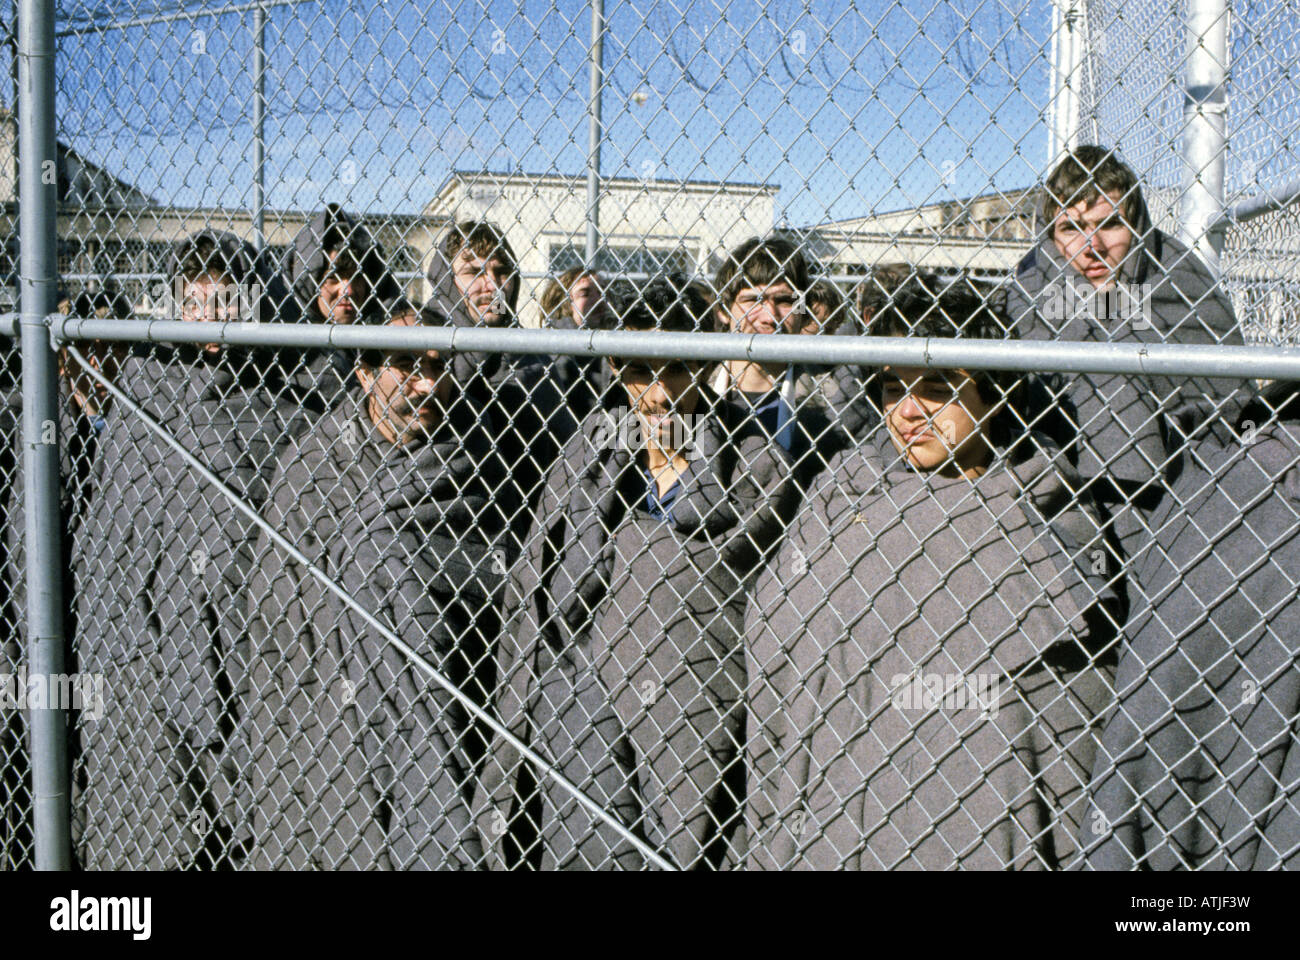 Prisoners who took part in the New Mexico State Penitentiary Riot which took place on February 2 and February 3 - Stock Image